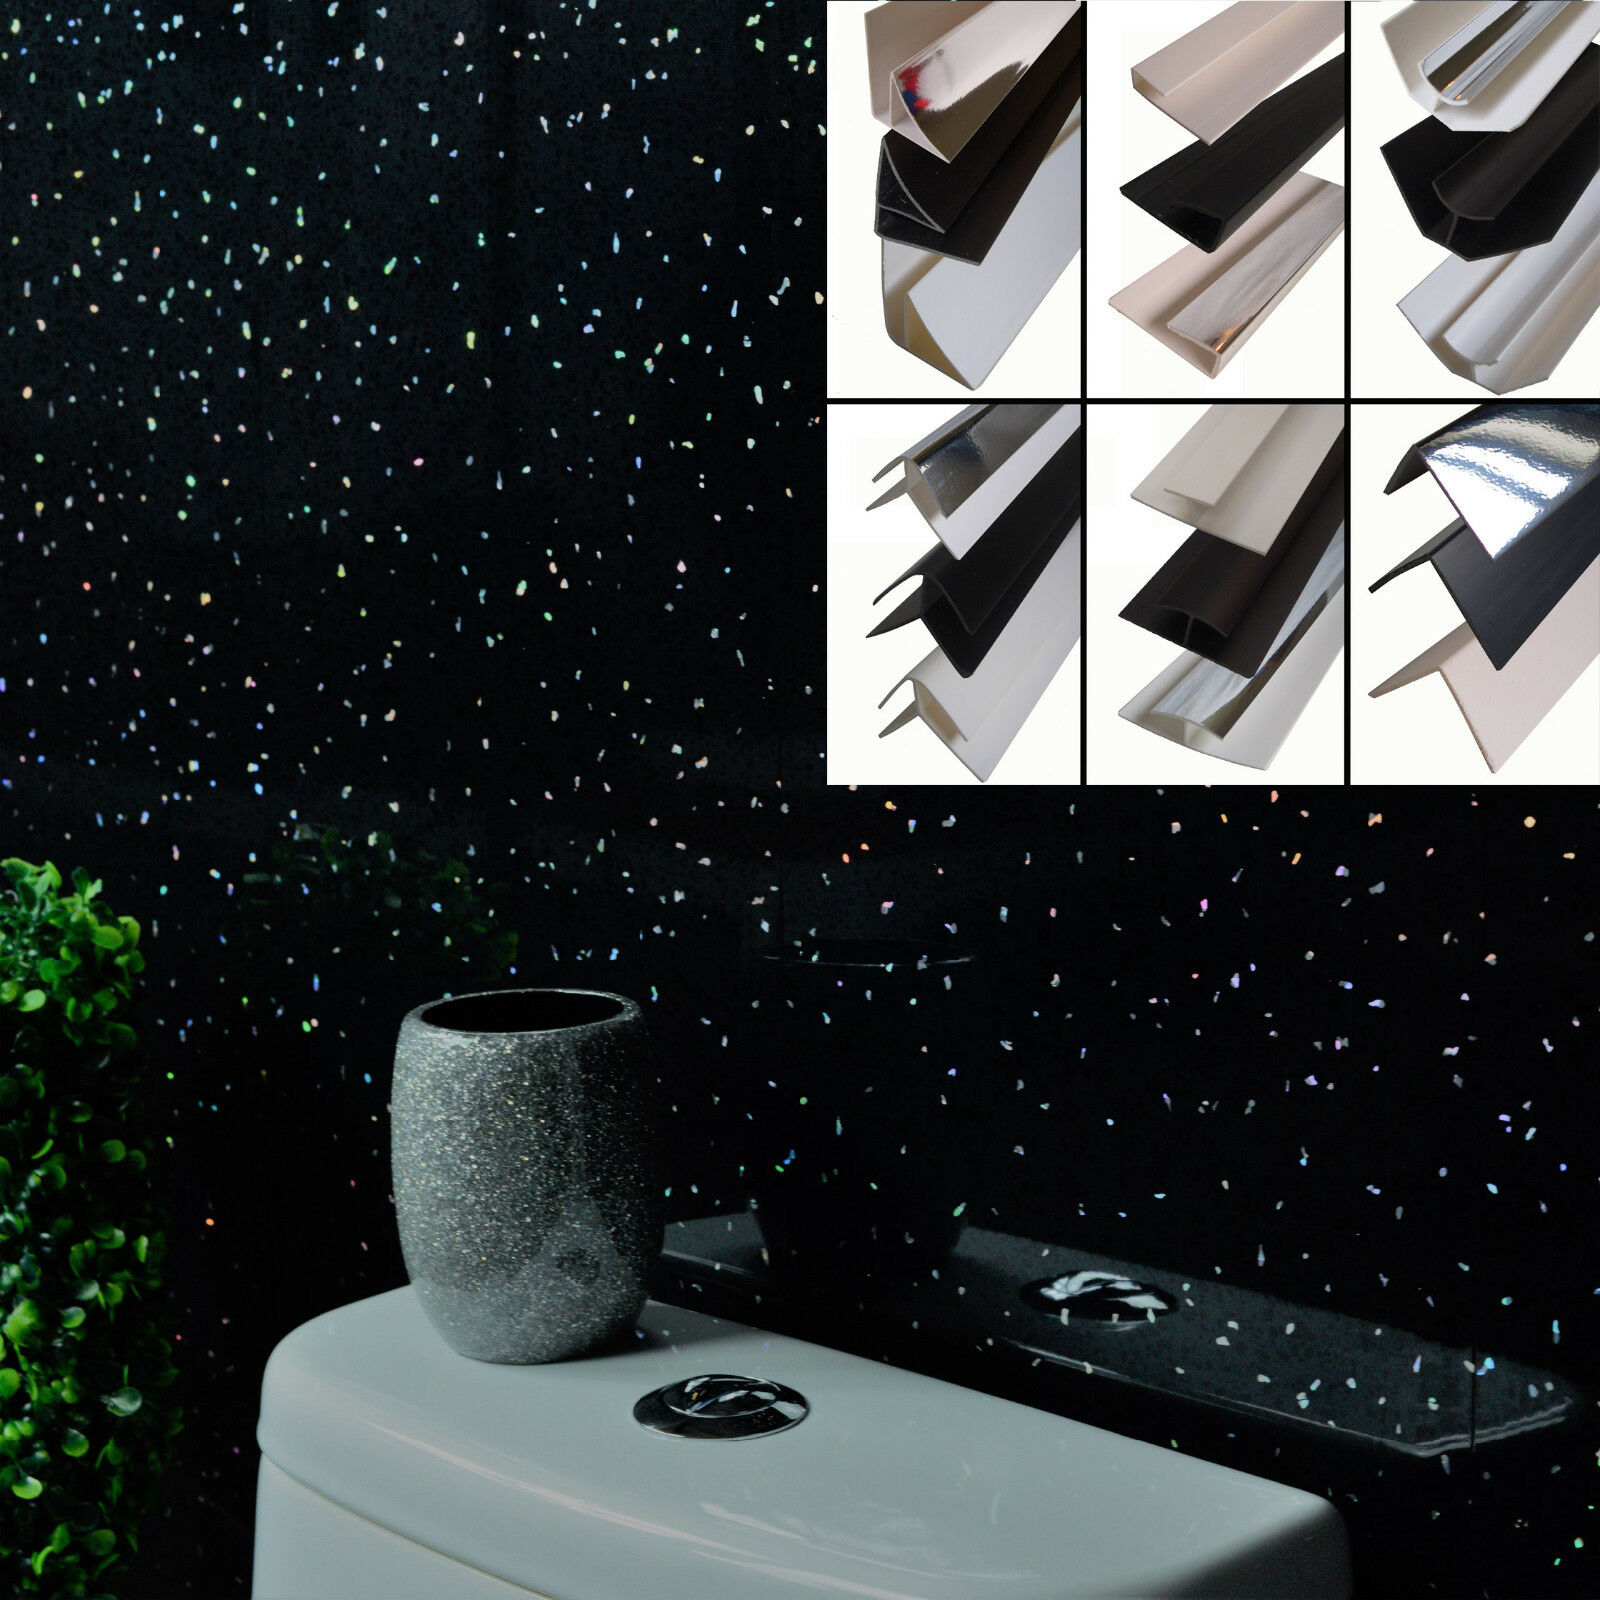 Black Sparkle Wall Panels Pvc Bathroom Cladding Trims Shower Wet Wall Waterproof Ebay